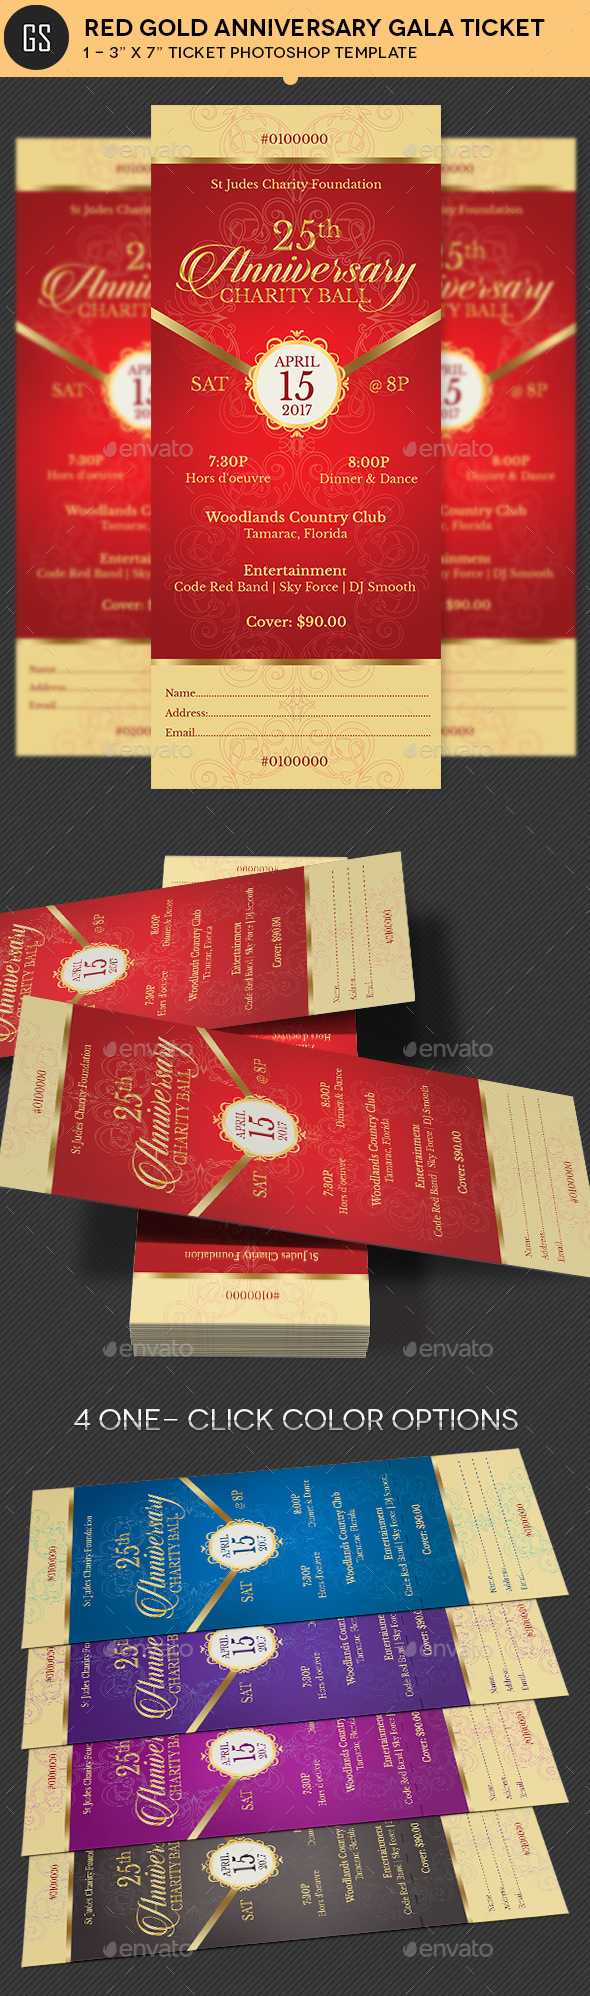 Red Gold Anniversary Gala Ticket Template - Miscellaneous Print Templates